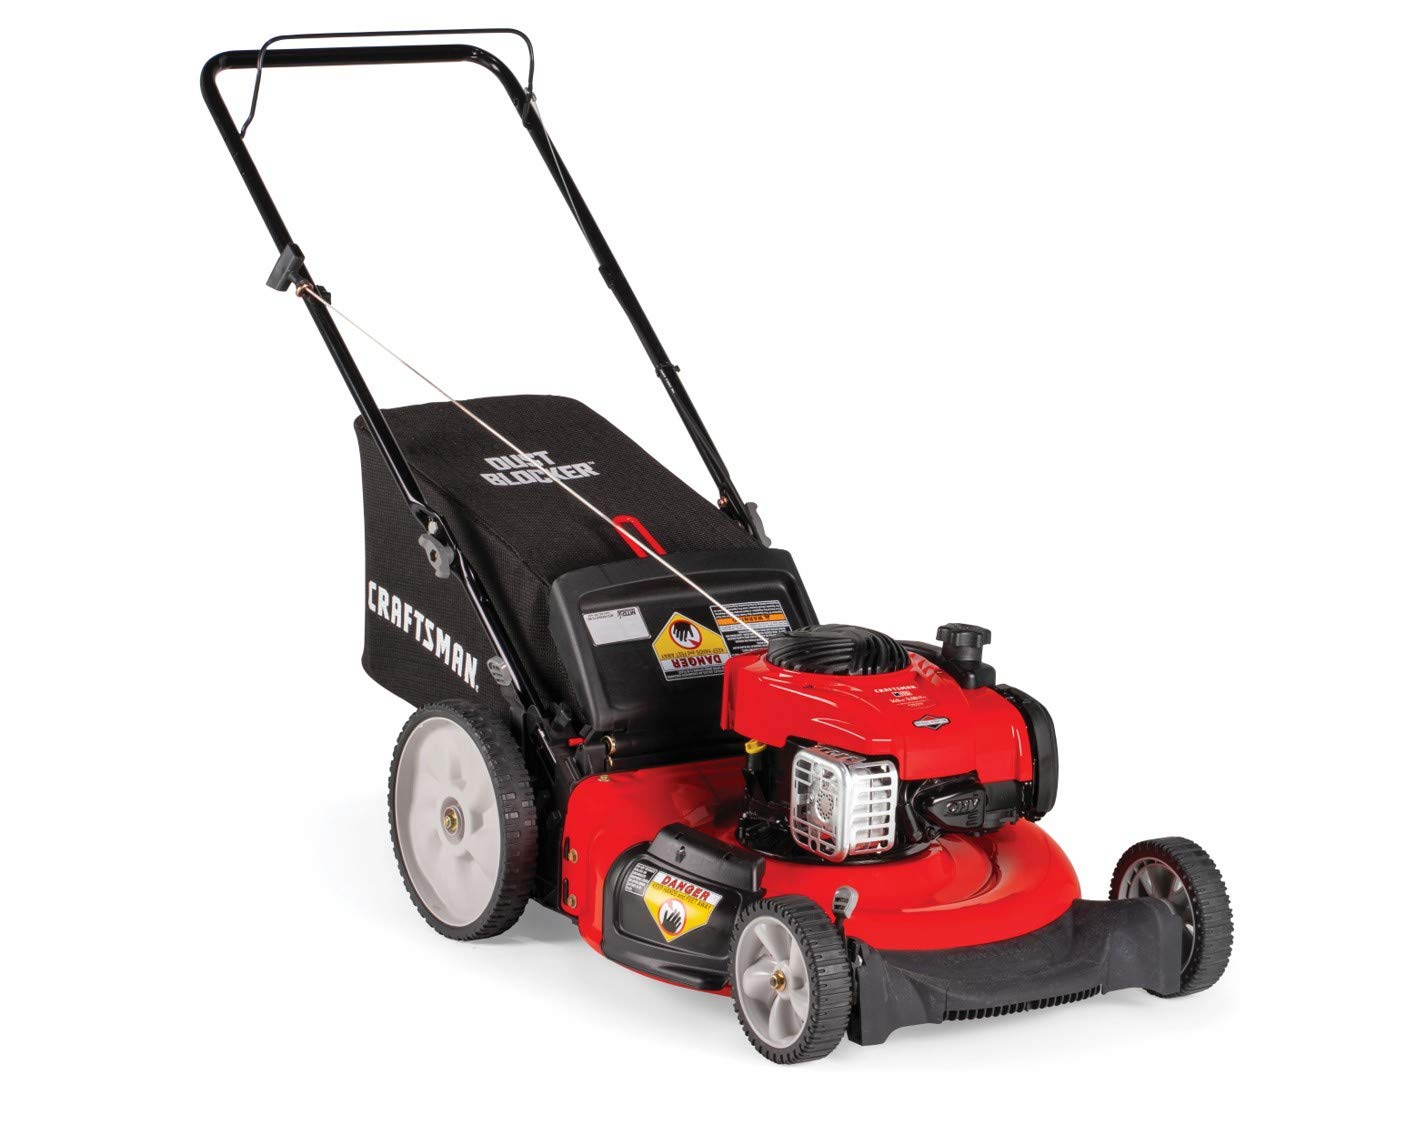 Craftsman M115 11A-B25W791 Push Lawn Mower, Red 2 140CC OHV GAS POWERED ENGINE: Powerful Briggs and Stratton 550E gas engine comes equipped with recoil and primer. 3-IN-1 CAPABILITIES: Unit has side discharge, rear discharge, and mulching capabilities. 21-INCH CUTTING DECK: Efficient cutting deck helps trim grass in one quick pass for an easier yard job.